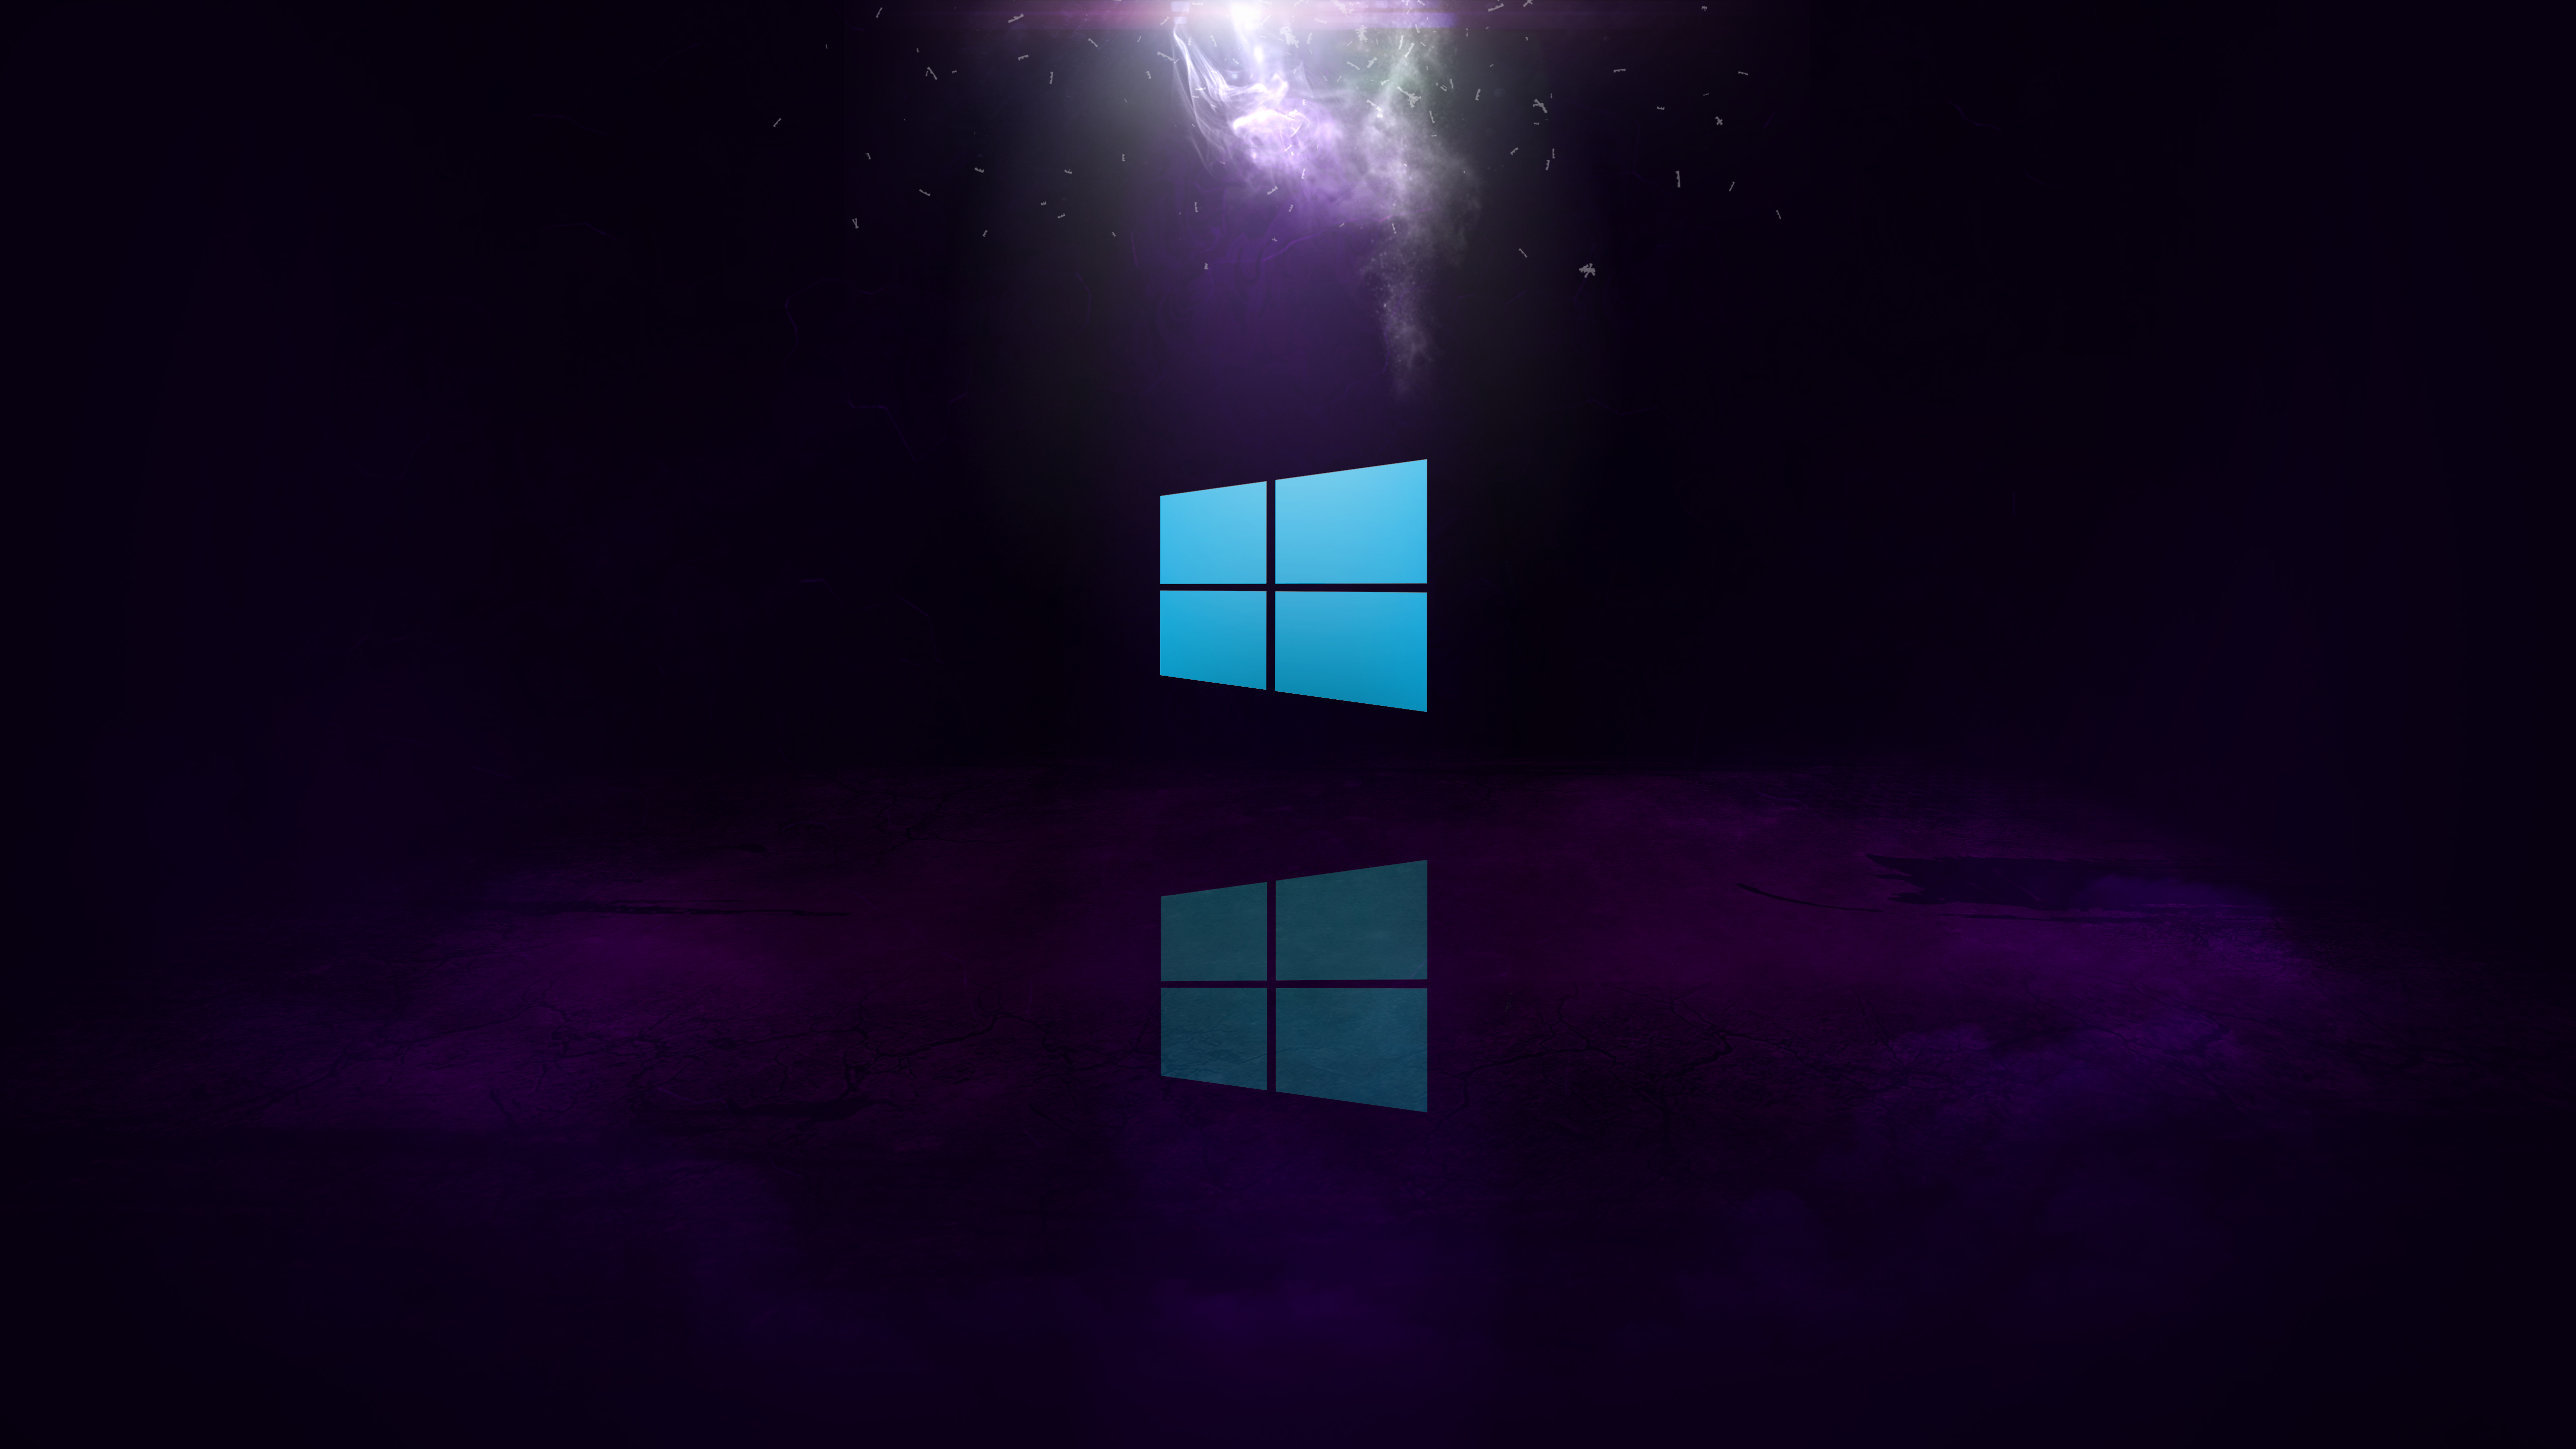 Windows 10 5k Hd Computer 4k Wallpapers Images Backgrounds Photos And Pictures